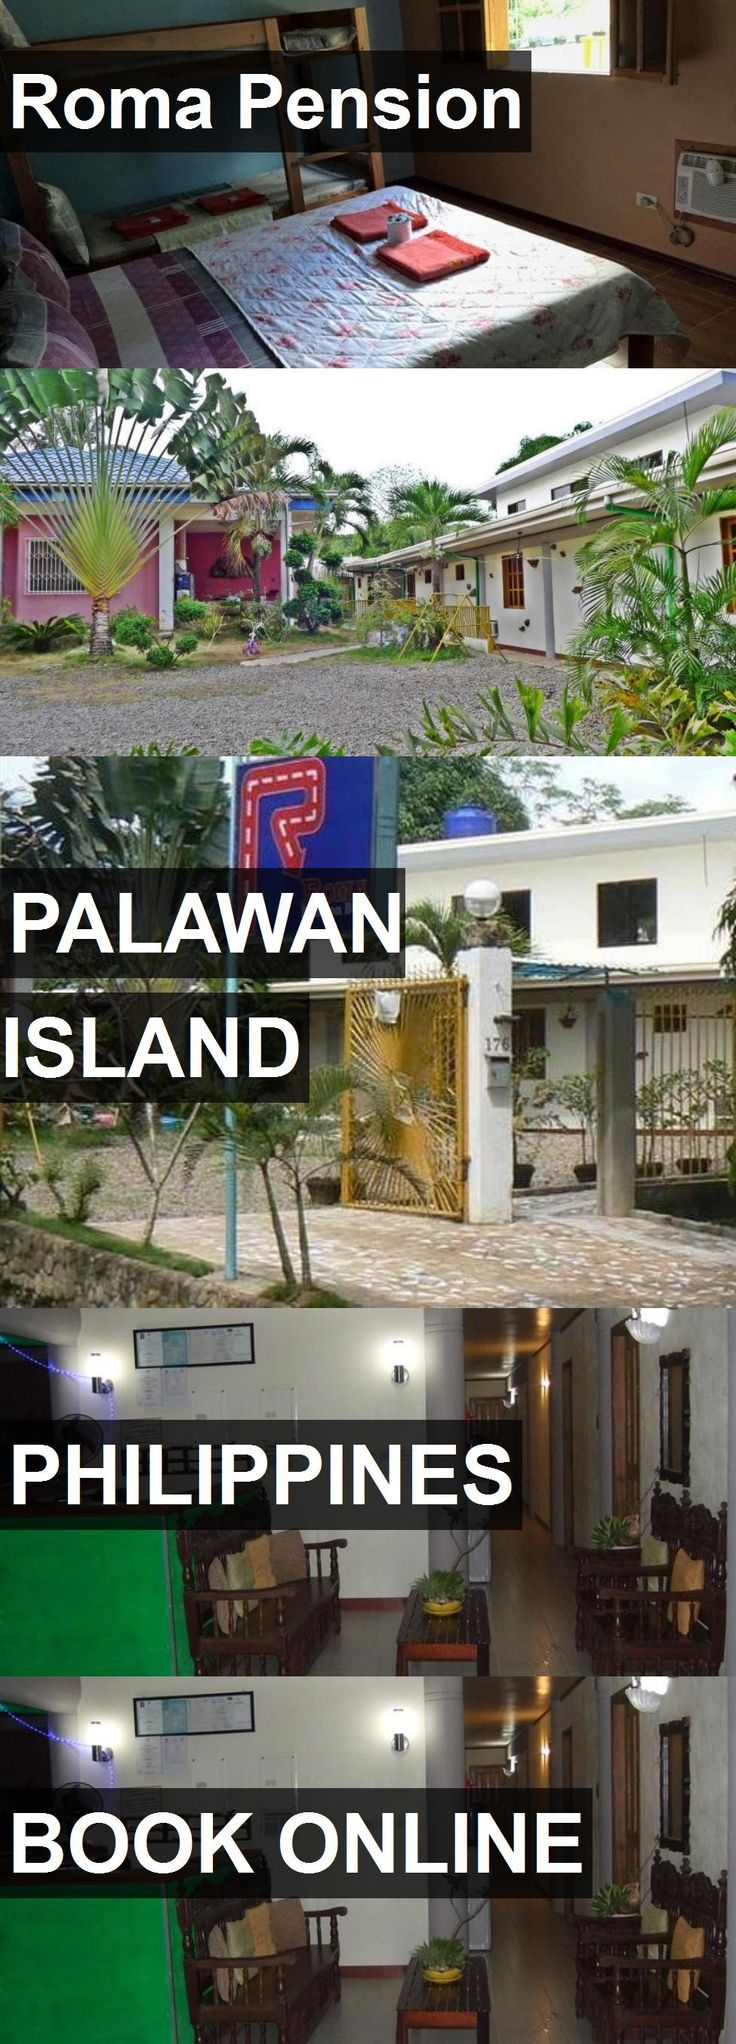 Hotel Roma Pension in Palawan Island, Philippines. For more information, photos, reviews and best prices please follow the link. #Philippines #PalawanIsland #travel #vacation #hotel